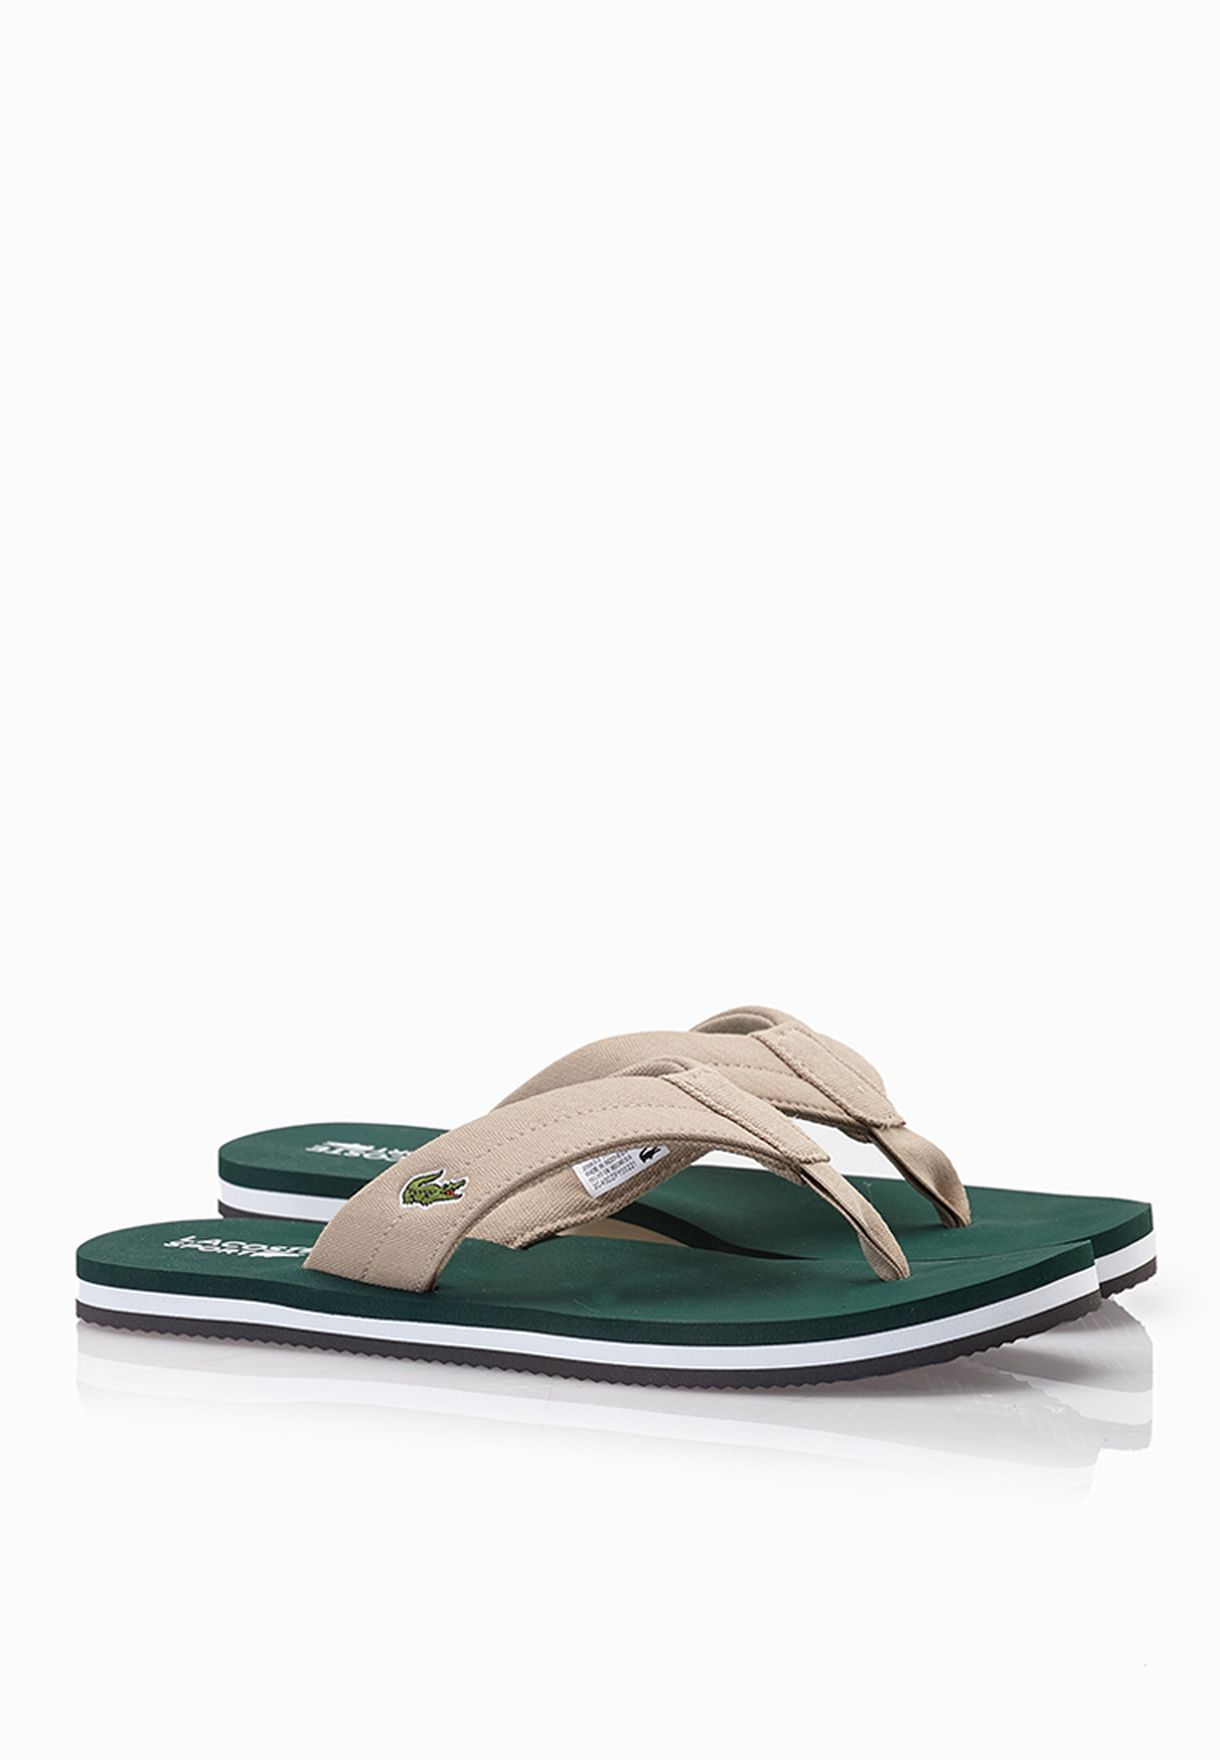 81ca18daa Shop Lacoste green Randle TBR Flip Flops 29SPM0041-1R8 for Men in ...